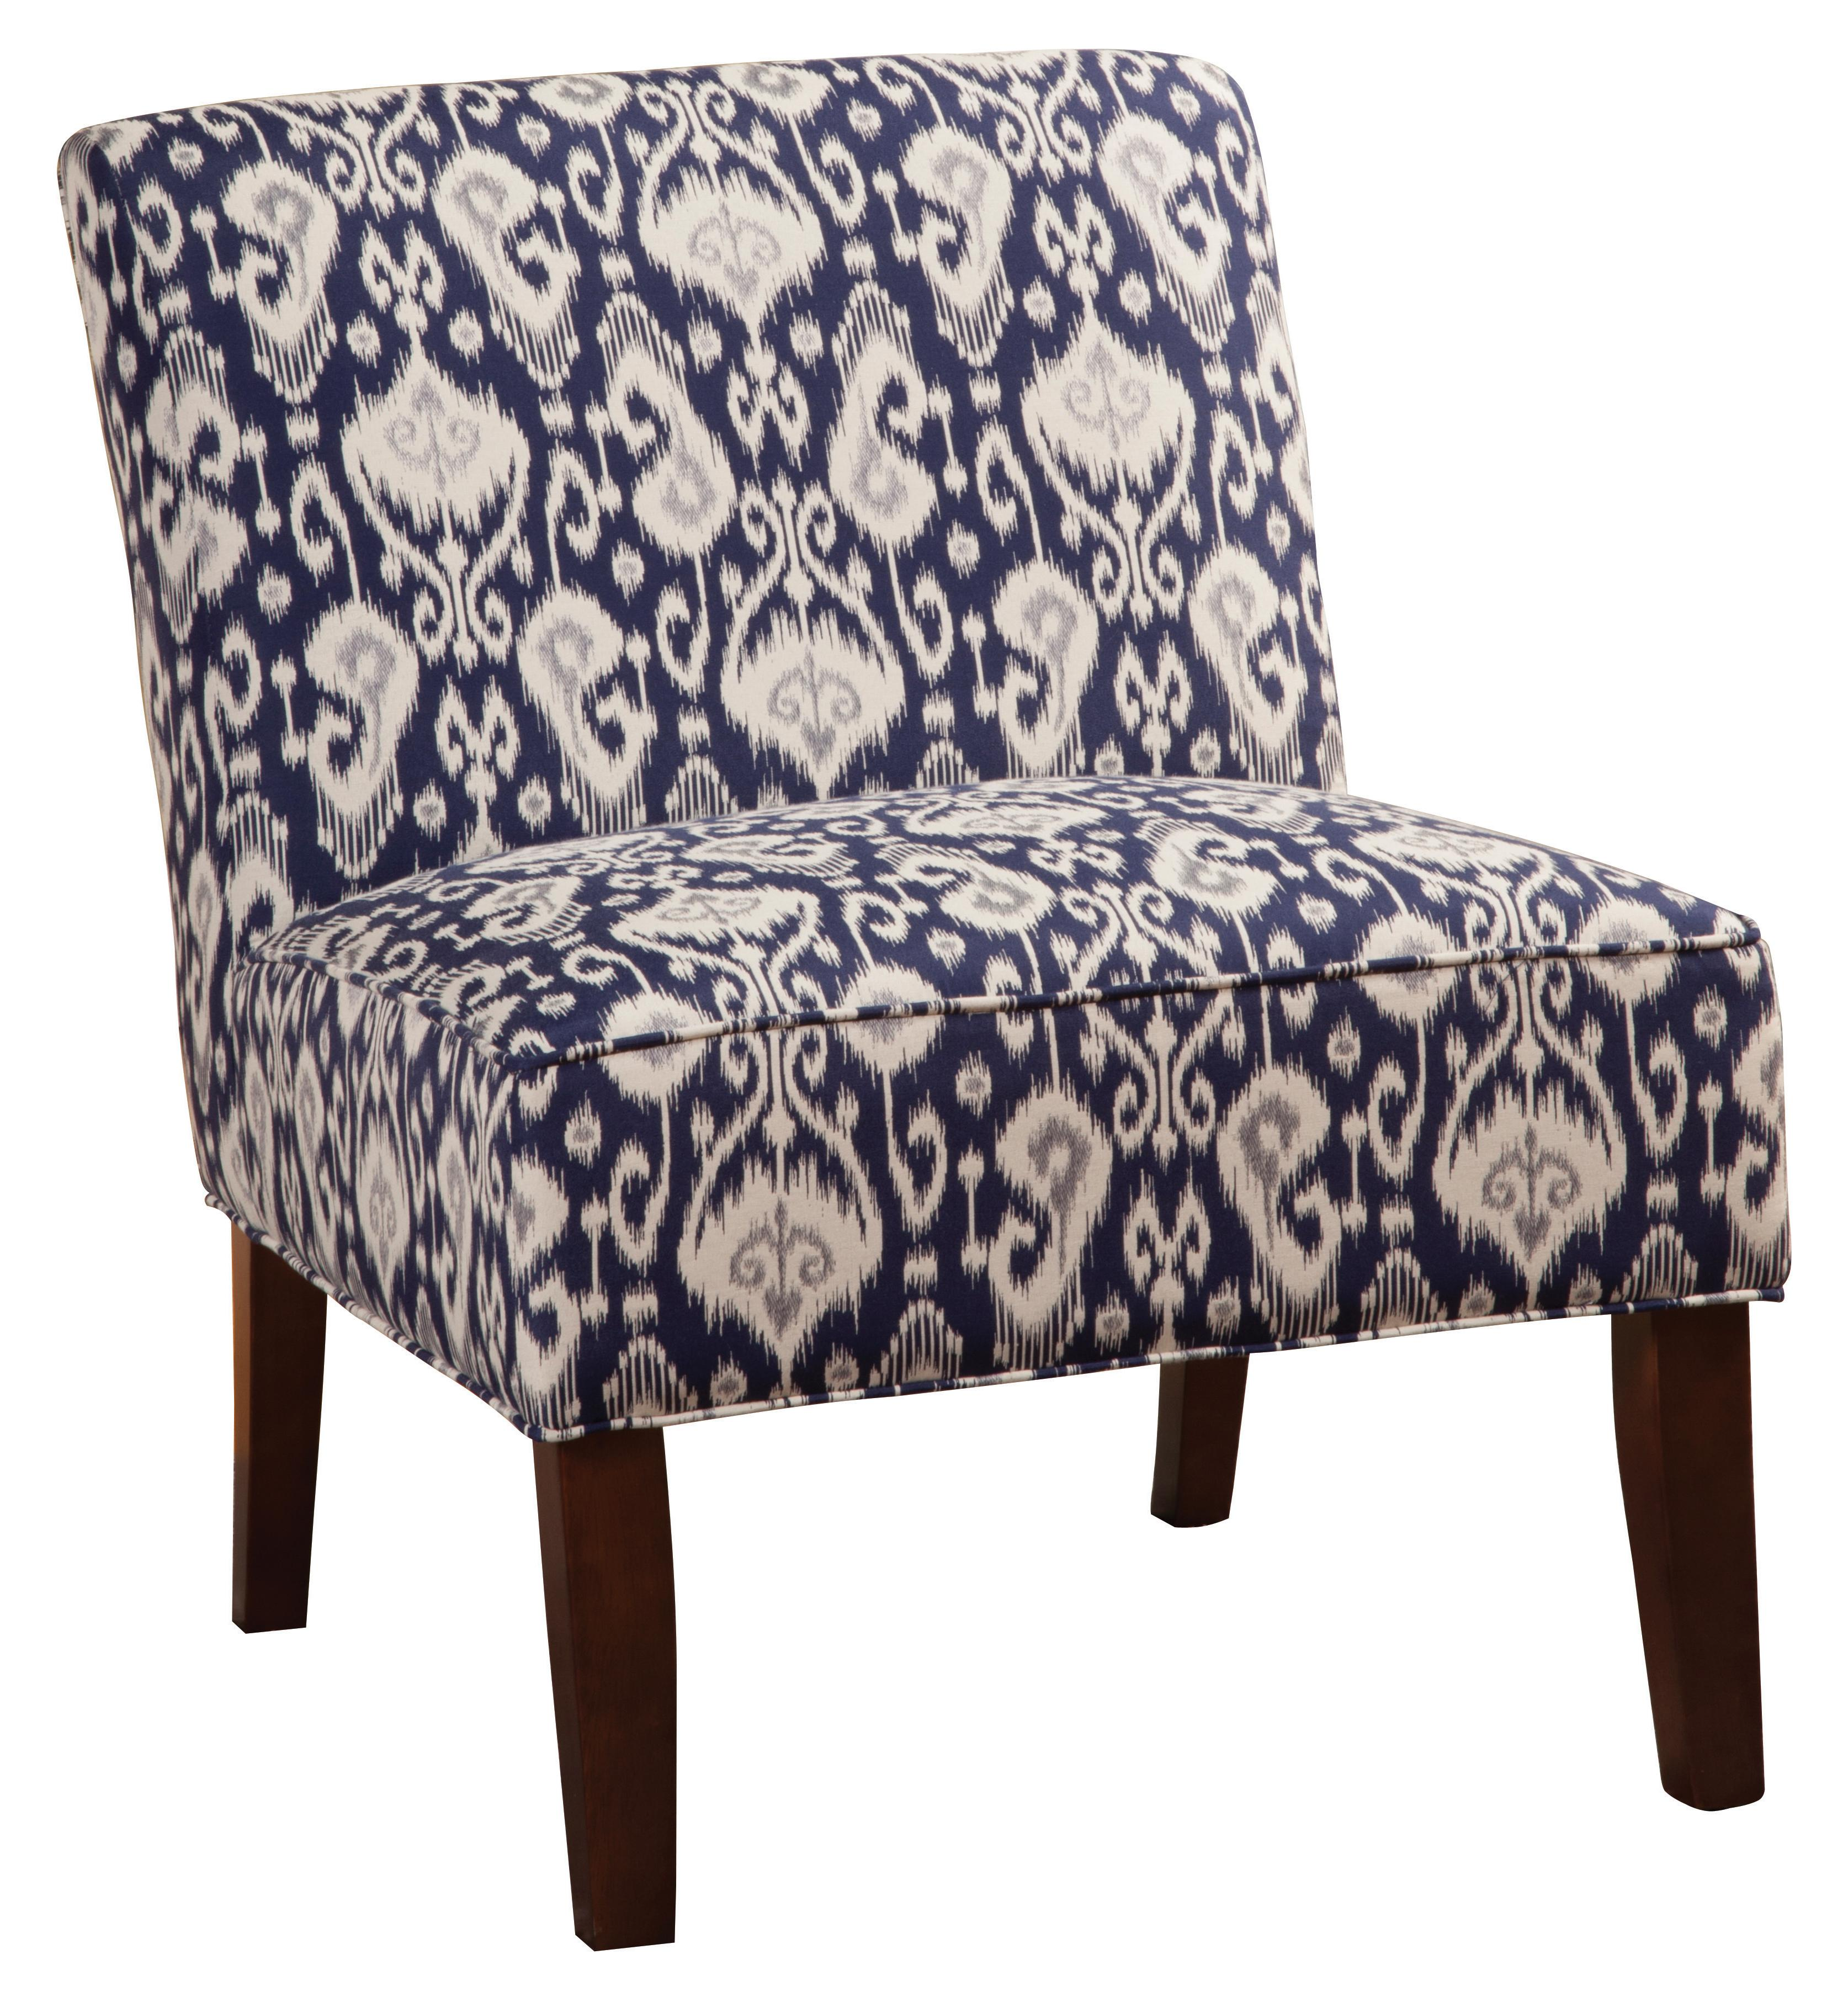 Beau Accent Seating Armless Accent Chair In Navy/White Ikat Fabric